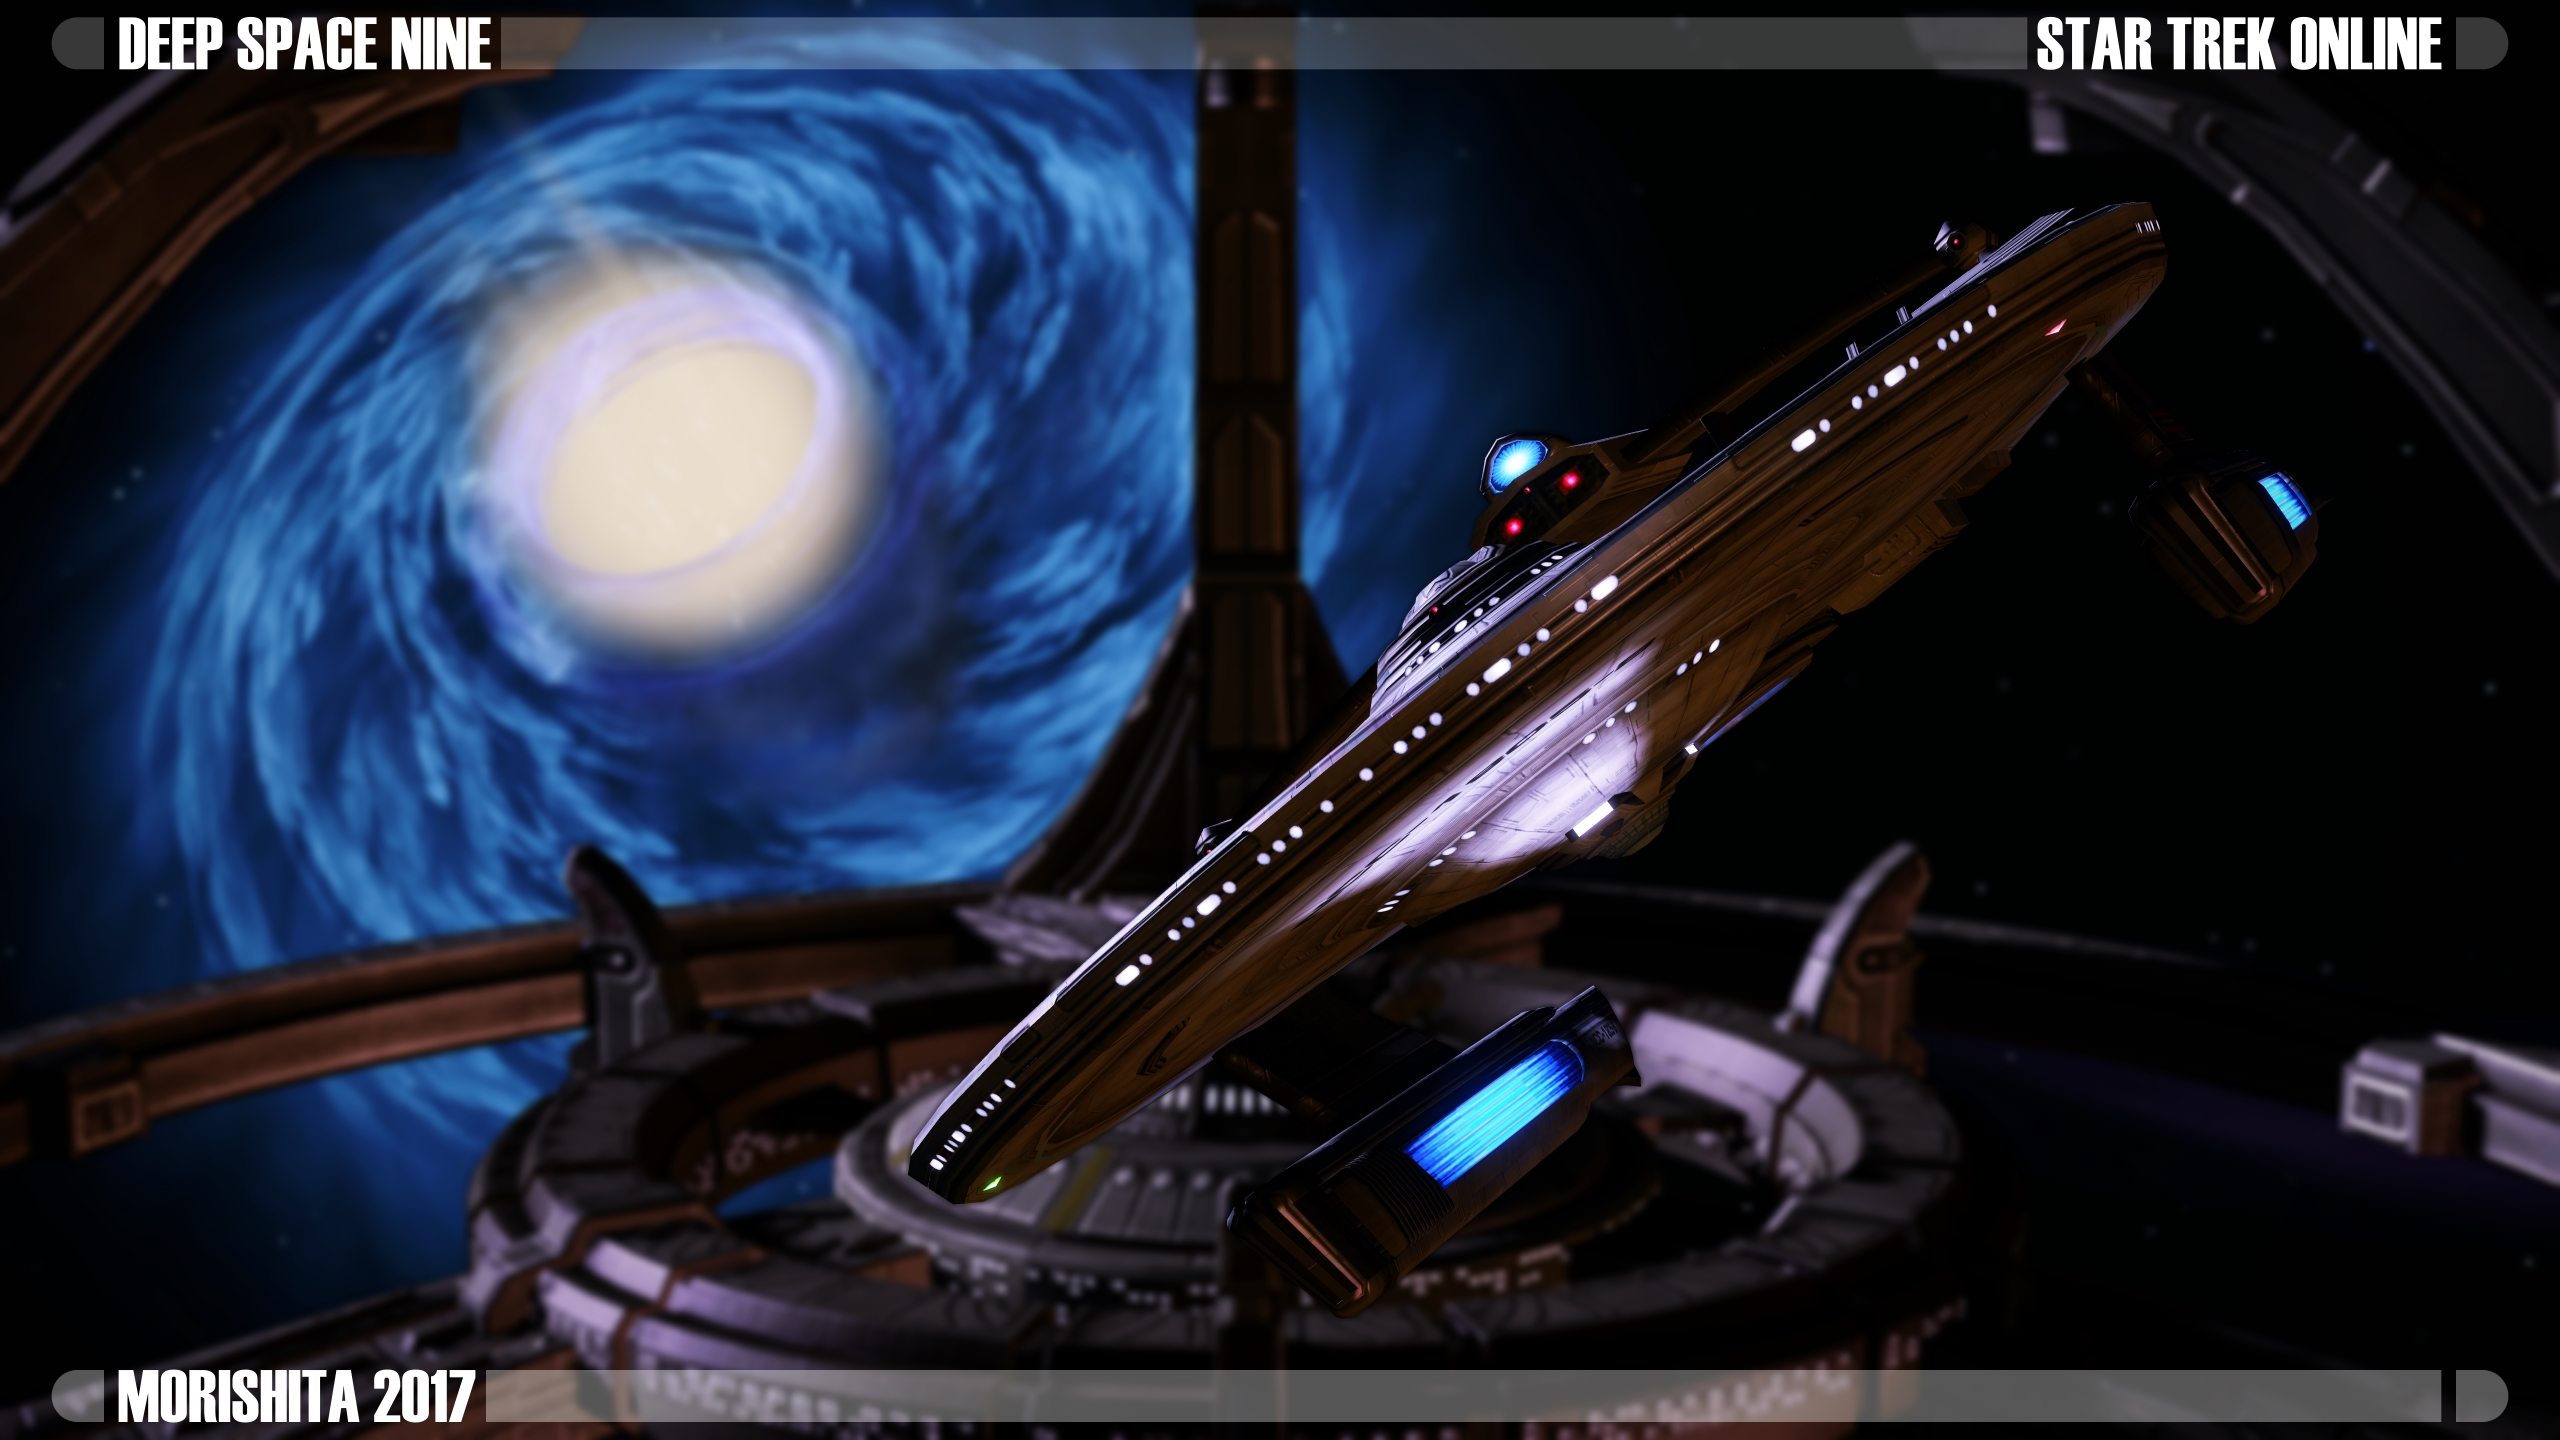 Deep Space Nine #002